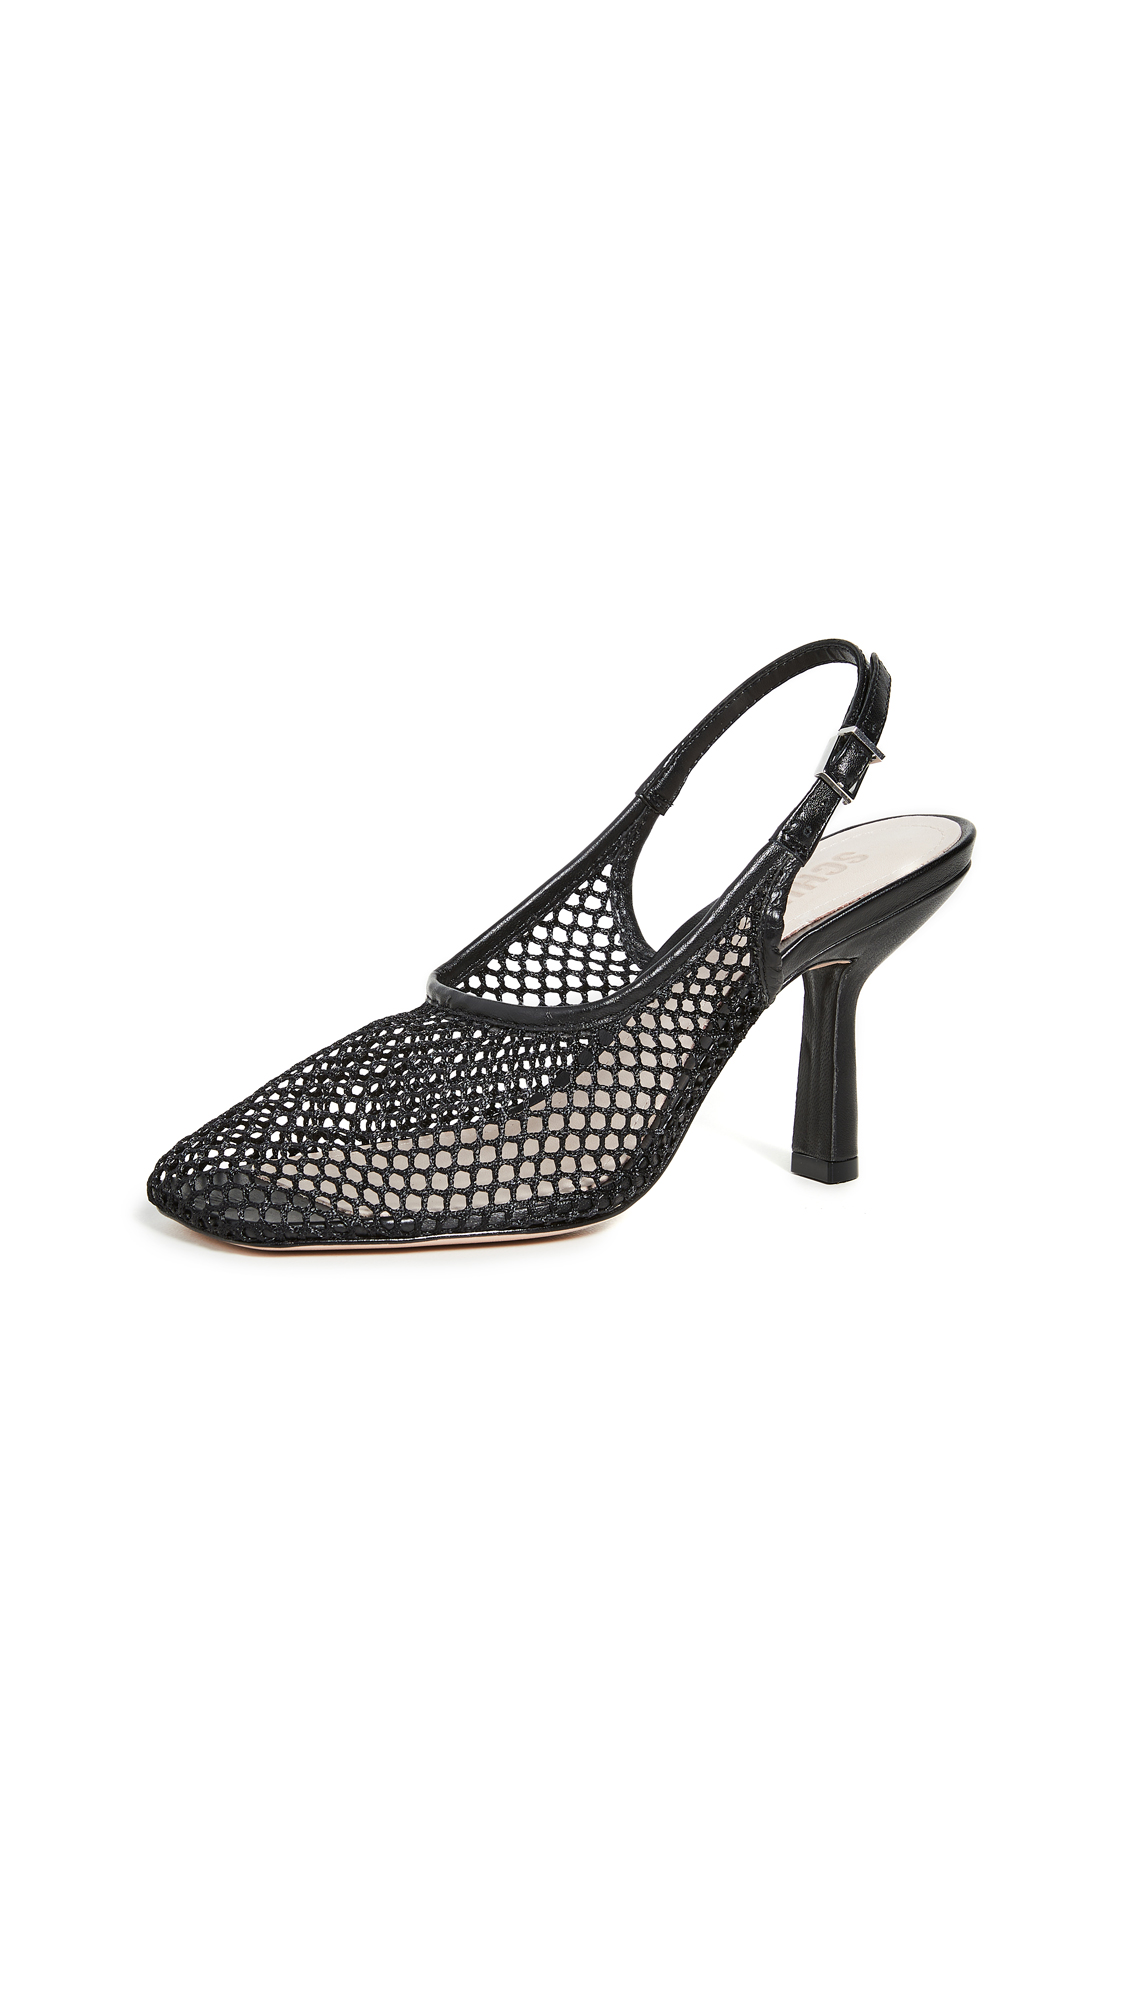 Schutz Kone Slingback Pumps - 30% Off Sale